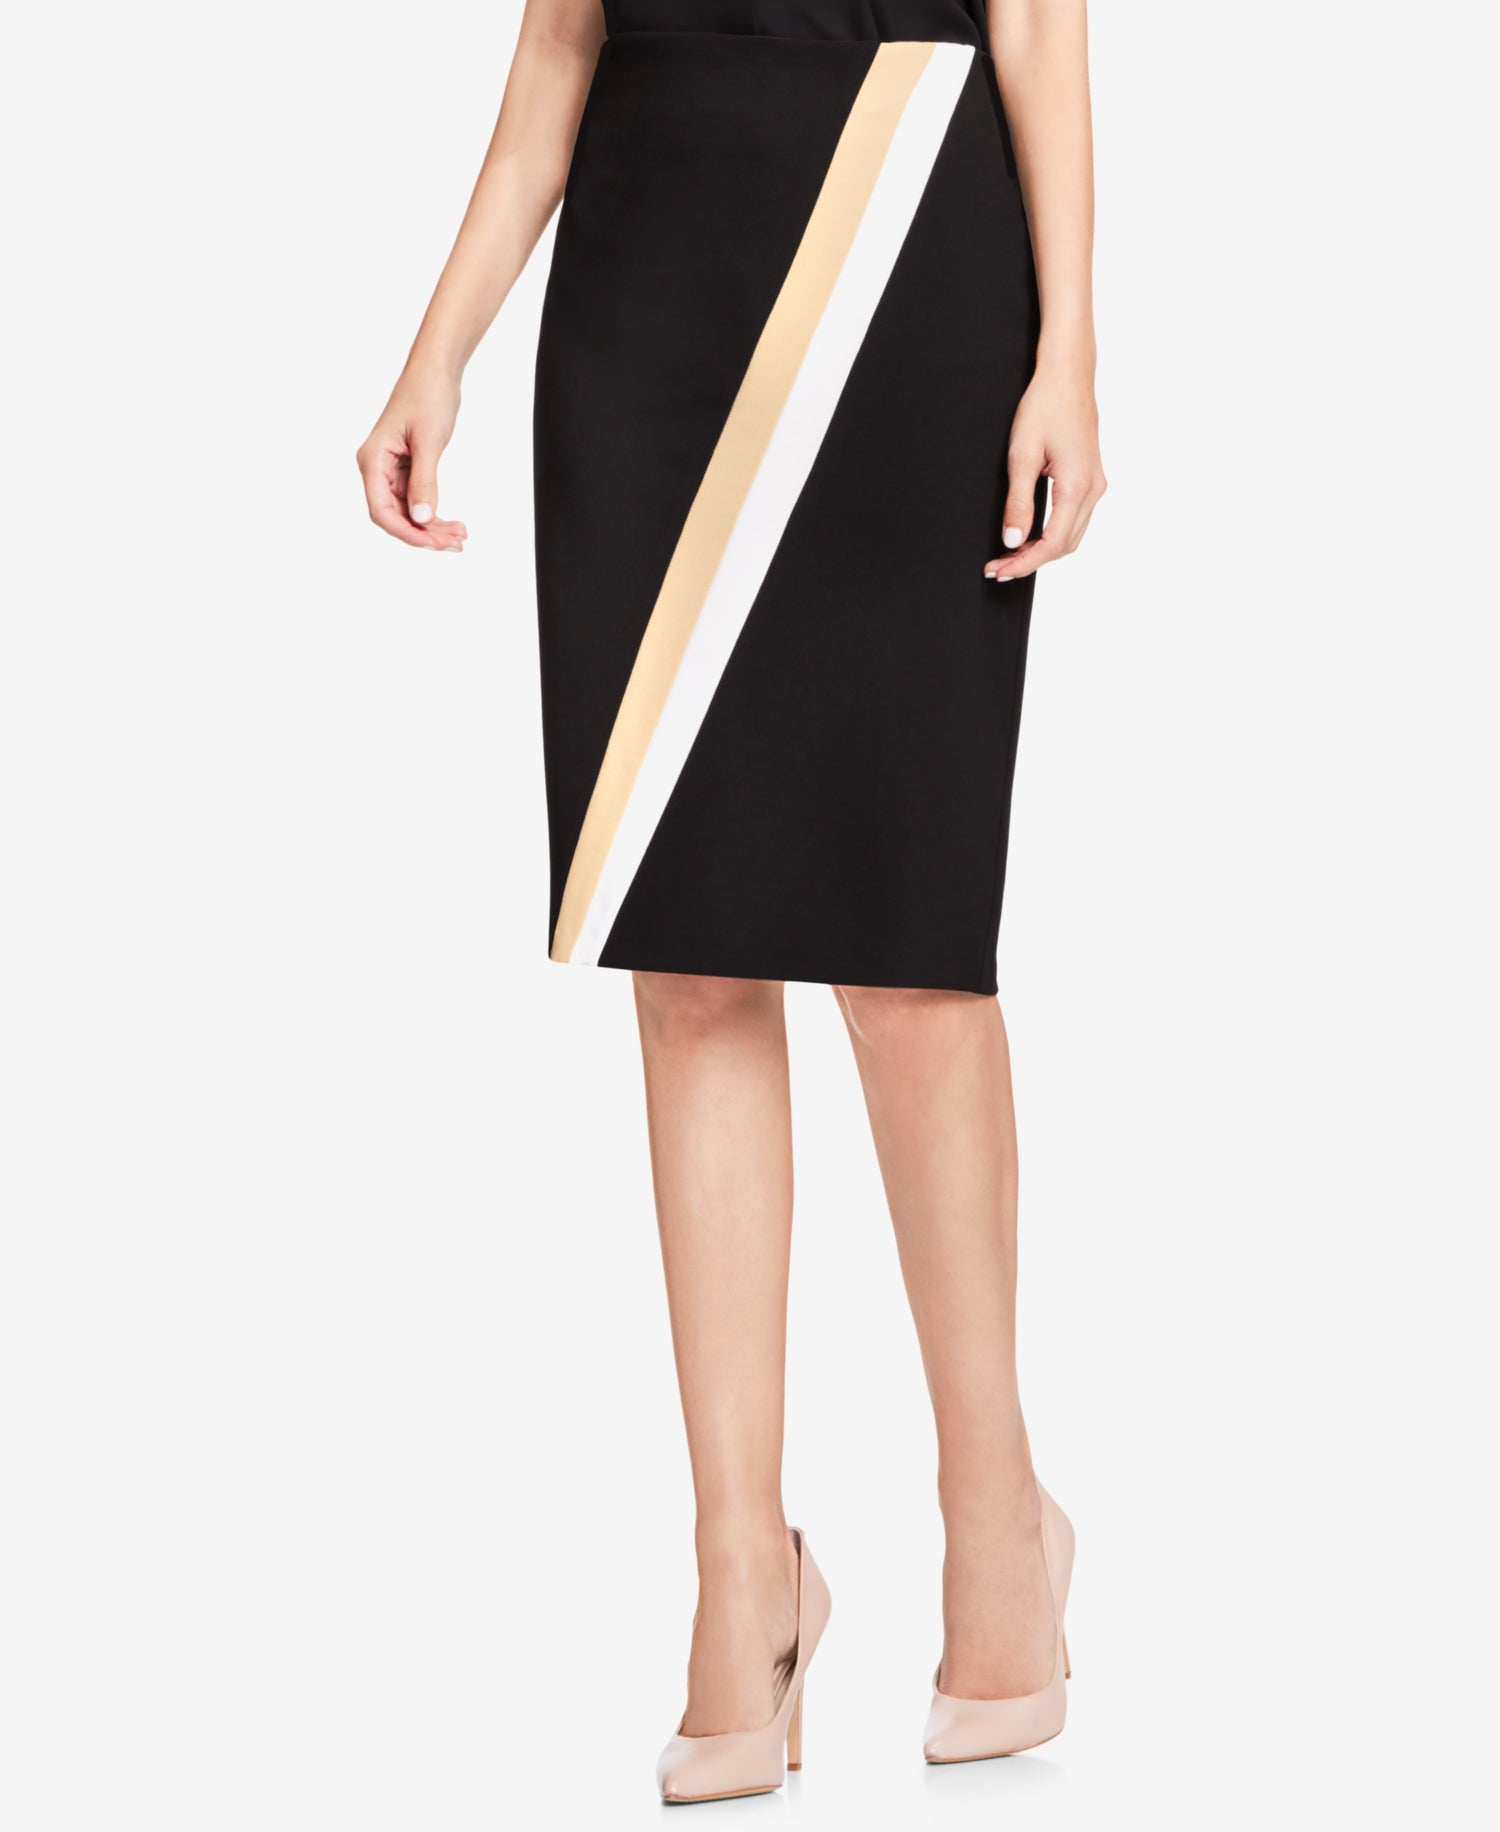 ce180237a8 Vince Camuto Women's Colorblocked Pencil Skirt – Retail Trunk